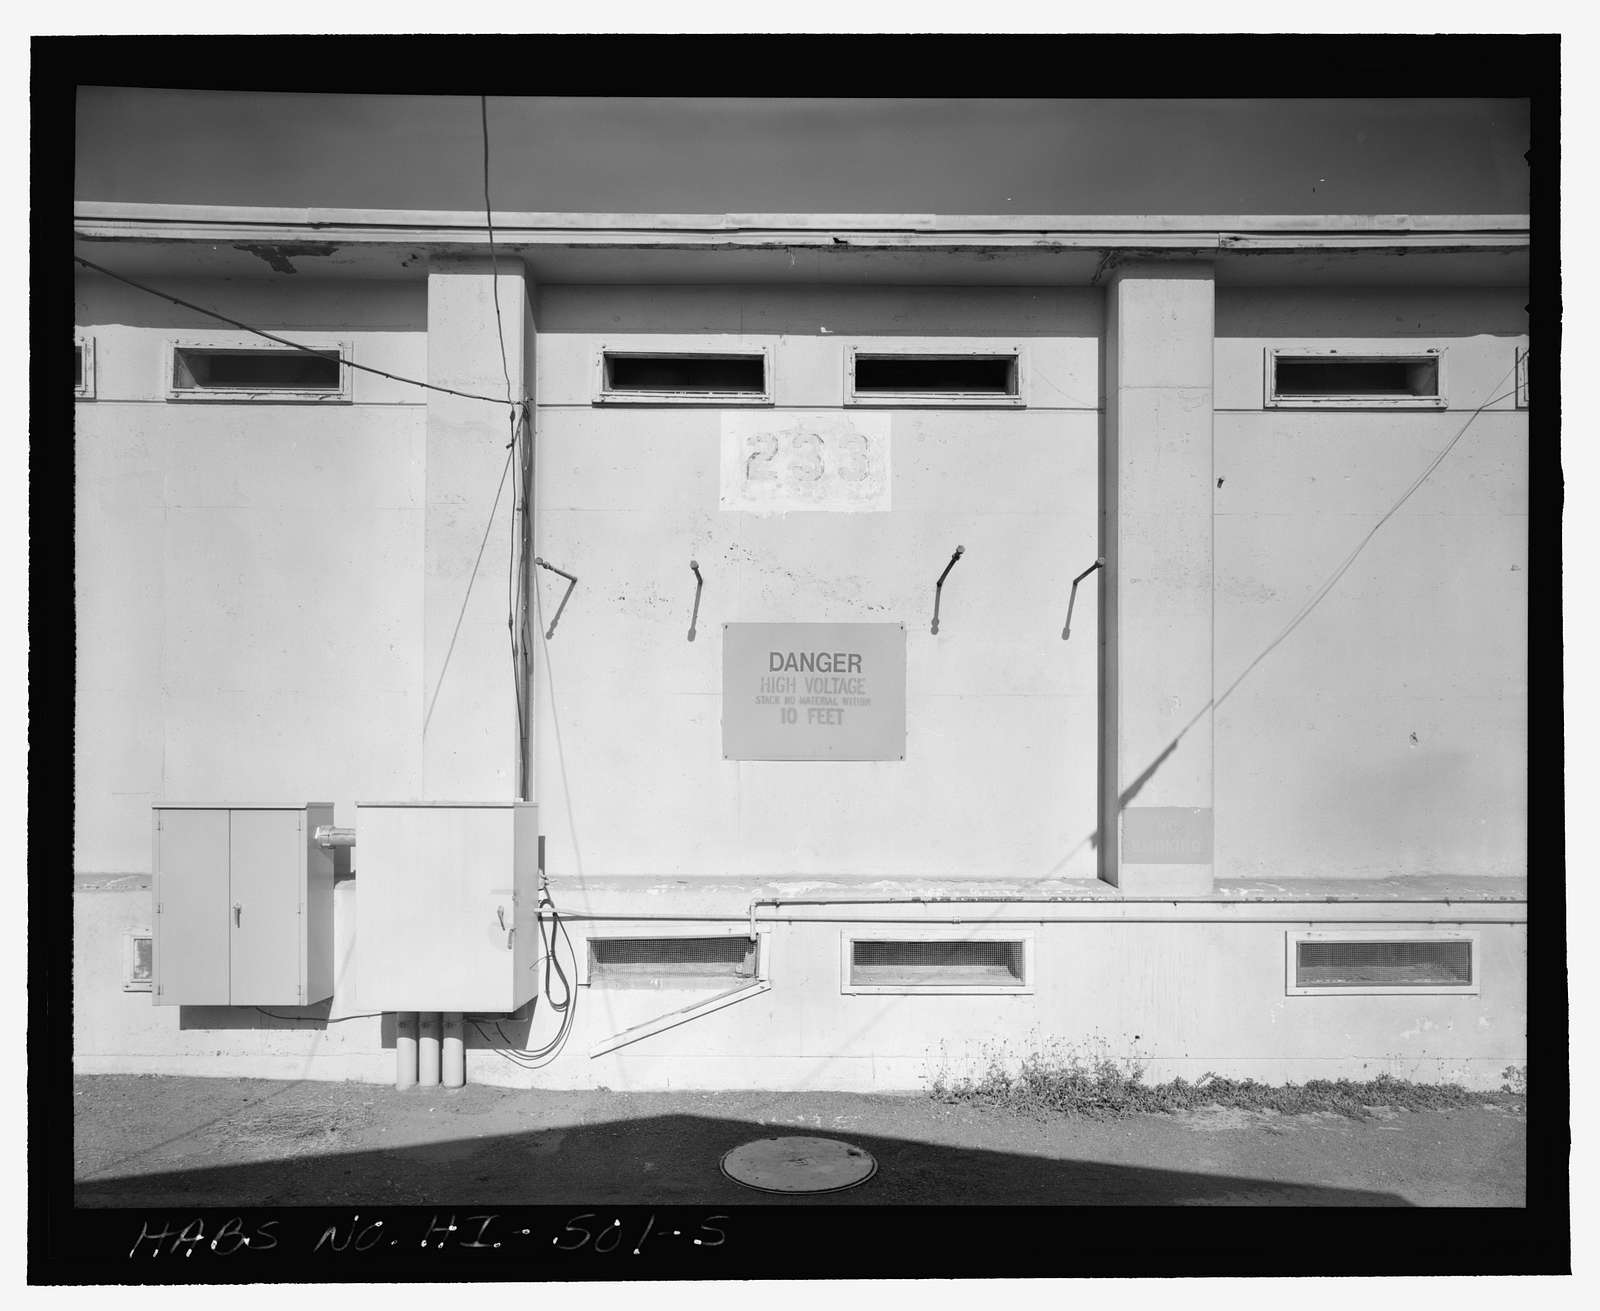 U.S. Naval Base, Pearl Harbor, Marine Railway No. 2 Machine House & Substation, Near intersection of Avenue G & Third Street, northwest of Dry Dock No. 3, Pearl City, Honolulu County, HI